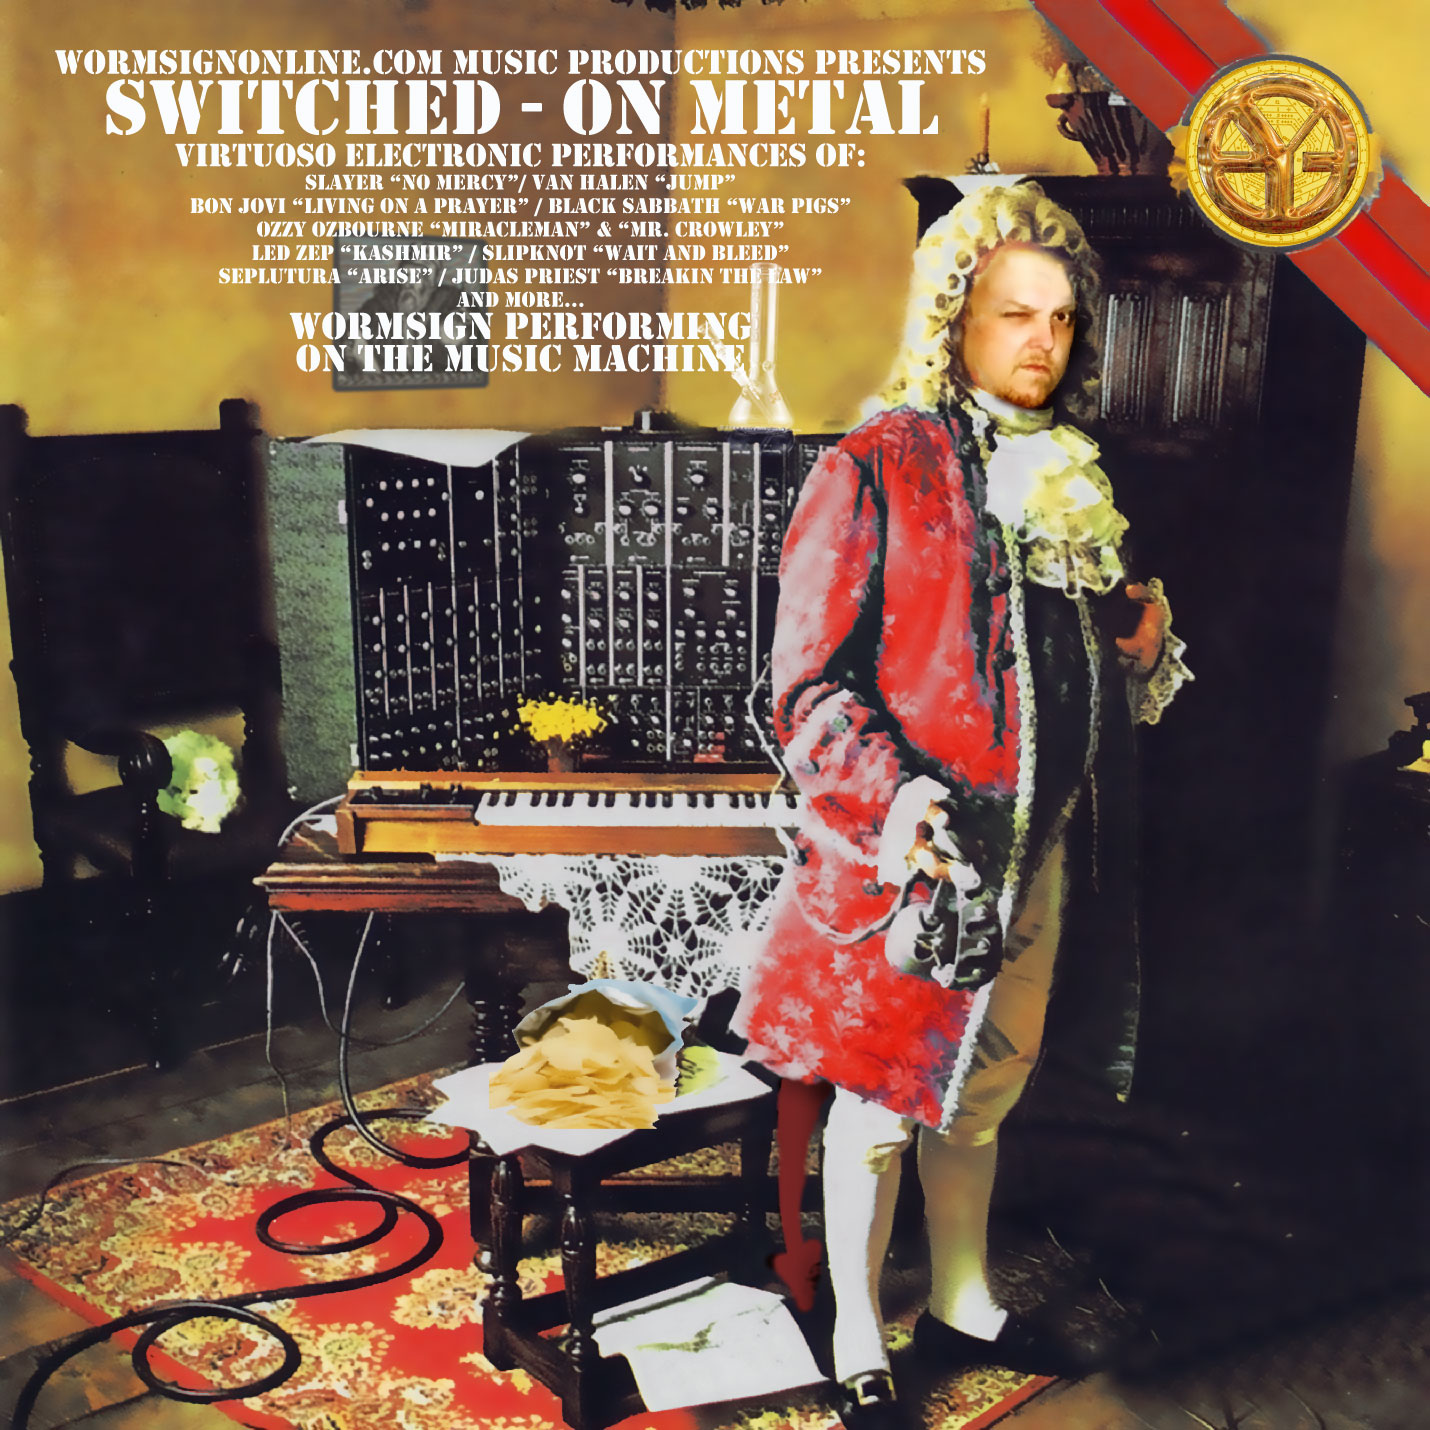 switchedonmetal